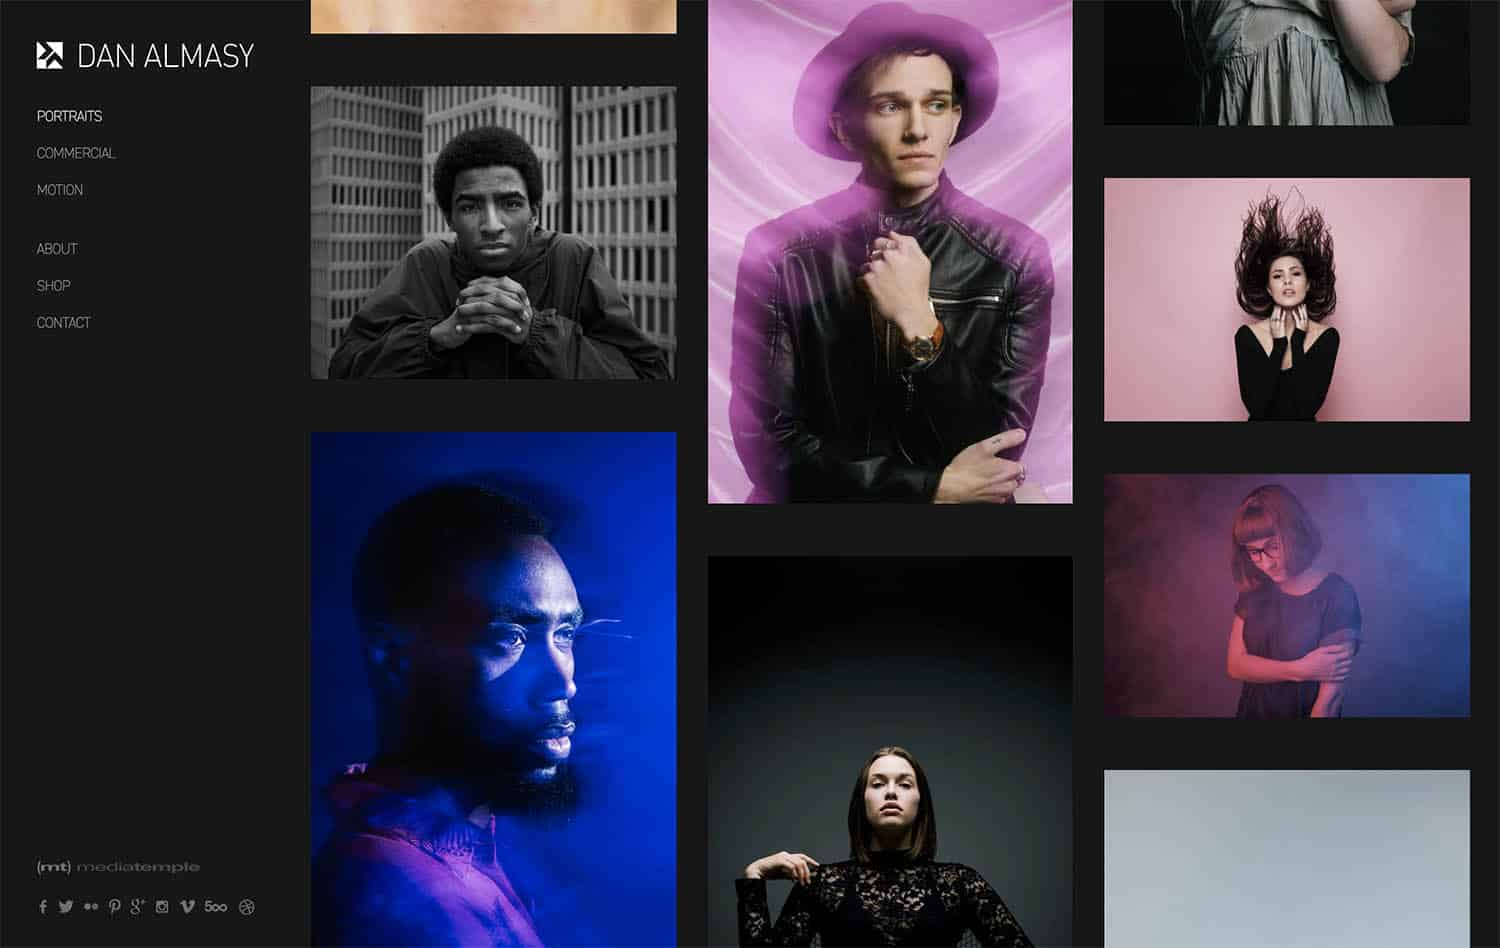 The Portraits portfolio on Dan Almasy's website is featured here. Six studio portraits are featured against a dark gray background along with Dan Almasy's logo.